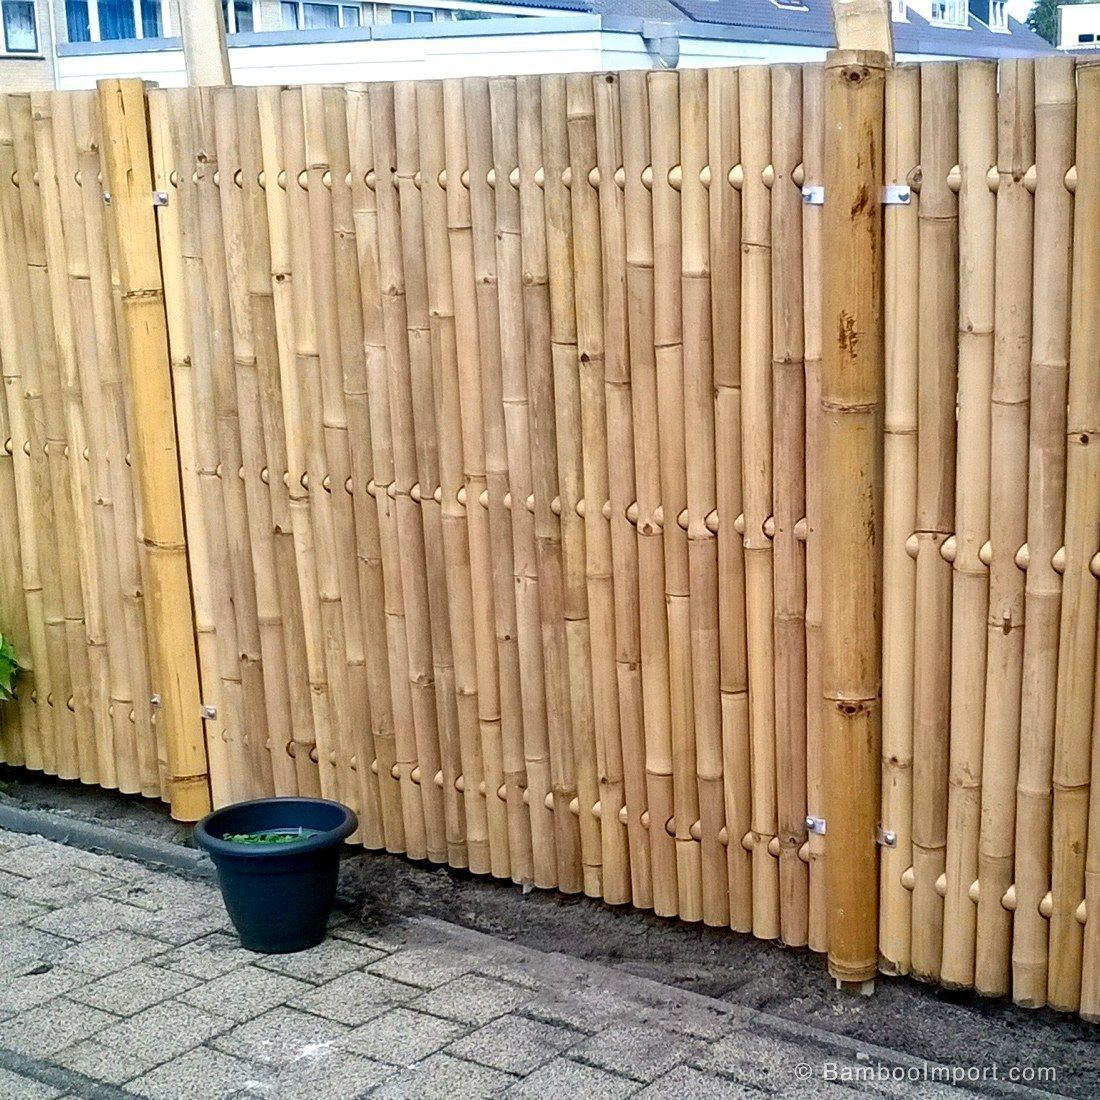 Bamboo Fence Panel Giant 180 X 180 Cm Whasapp Bamboo Fence Giant Panel Wha Bamboo Bamboo Fence Giant Panel Wha Wh